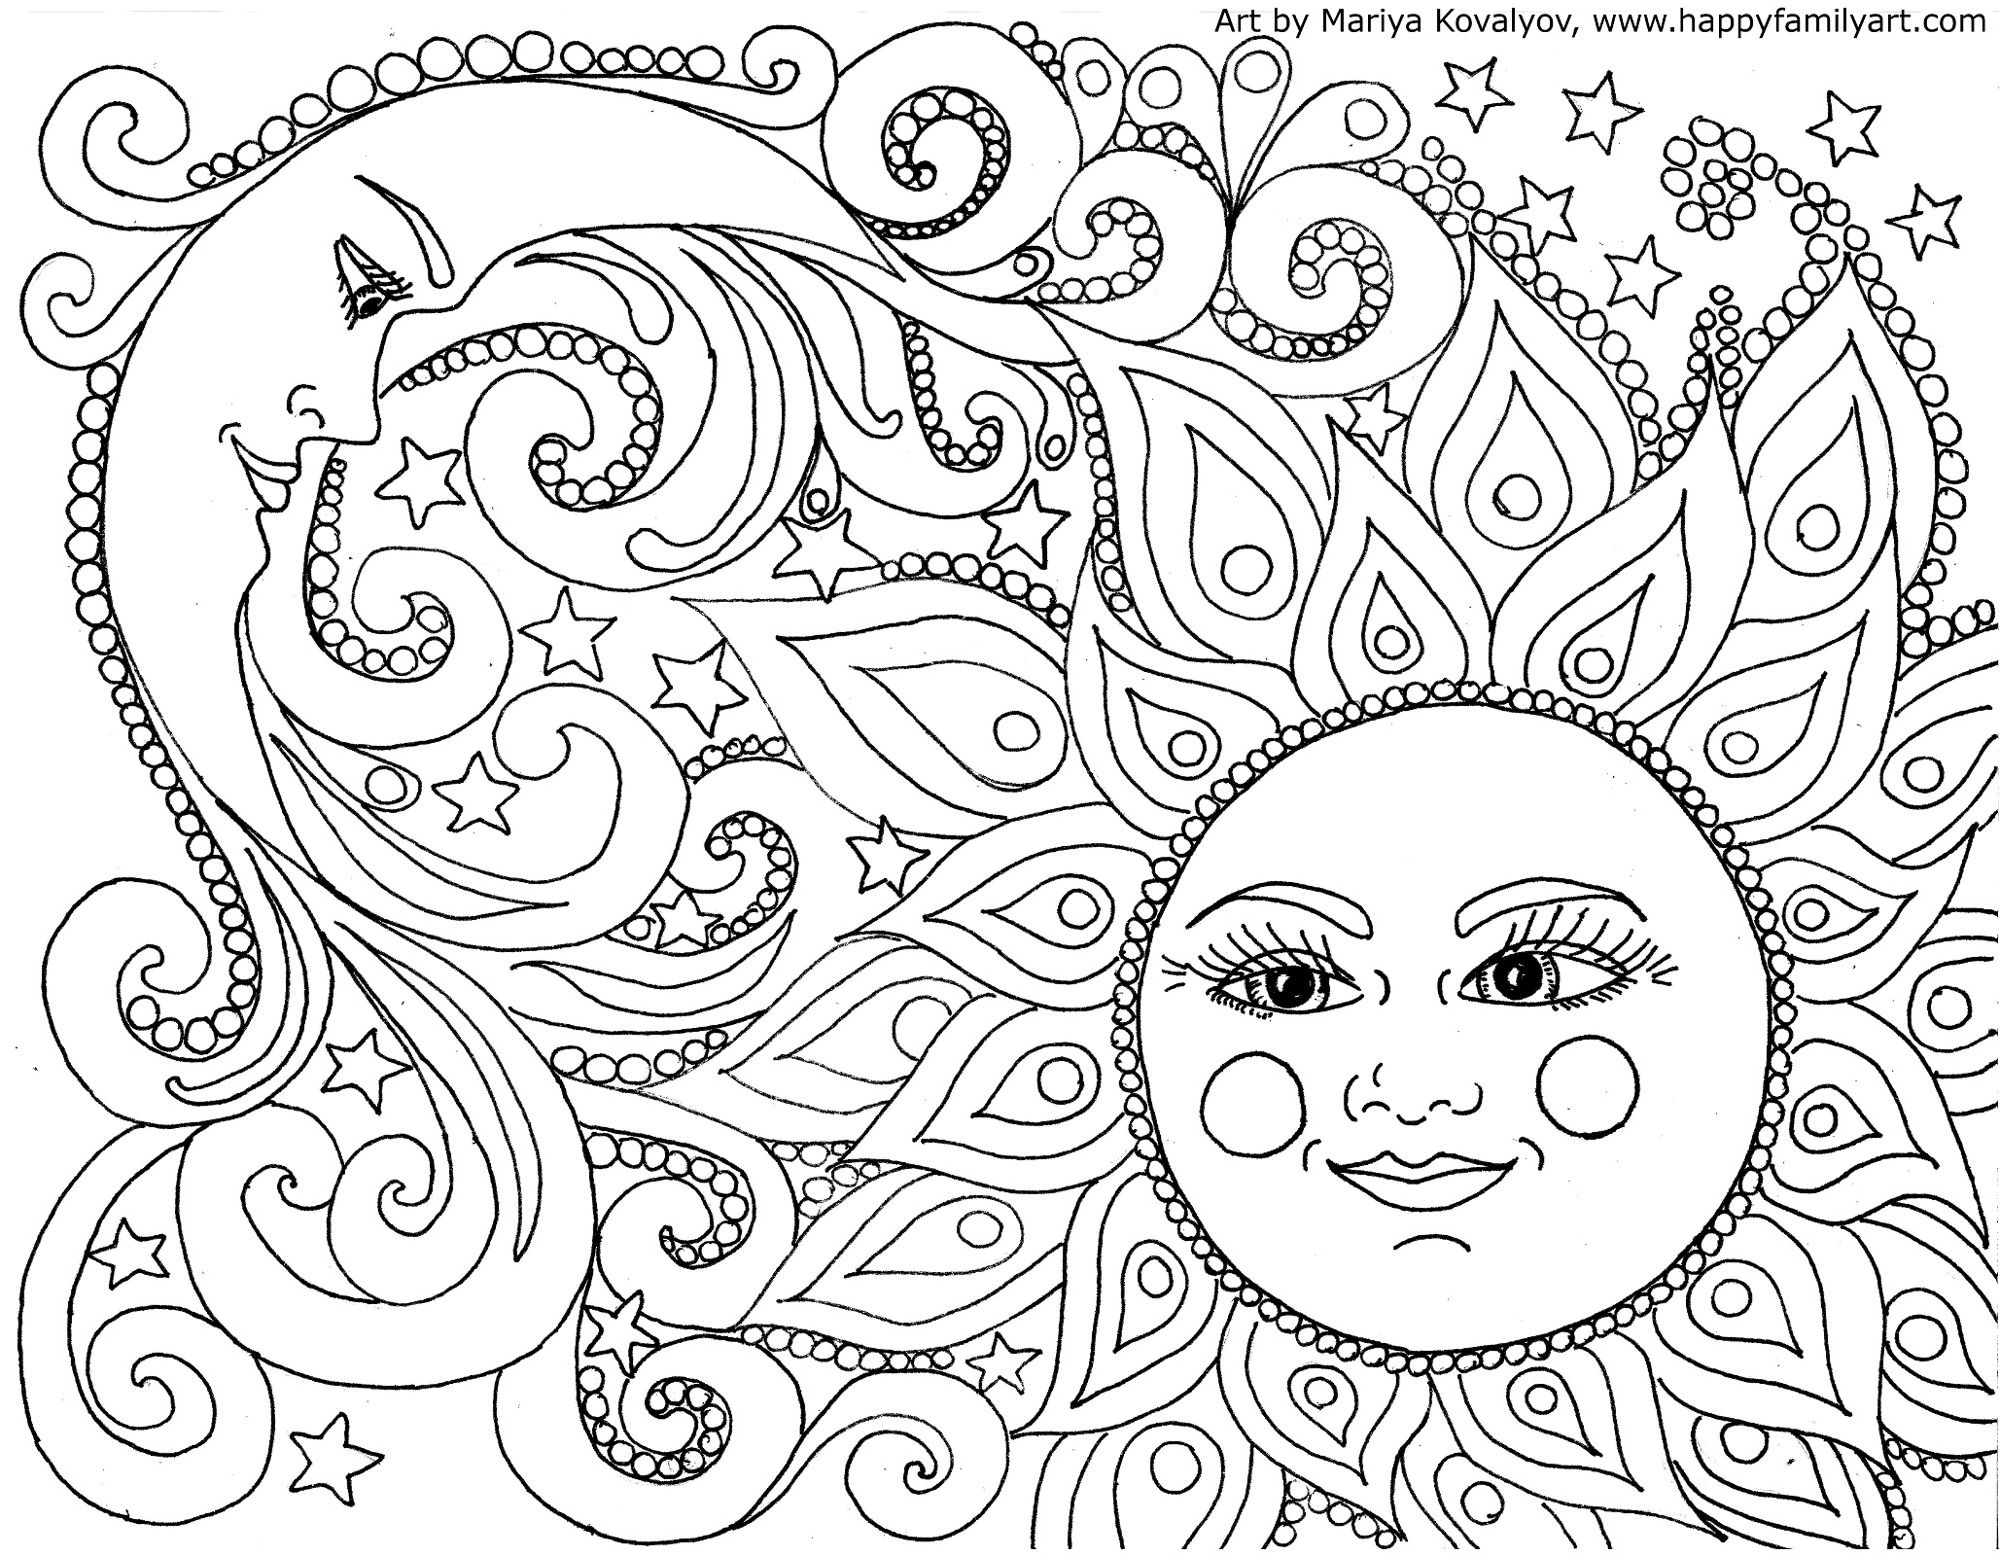 Printable drawing pages for adults - I Made Many Great Fun And Original Coloring Pages Color Your Heart Out Printable Adult